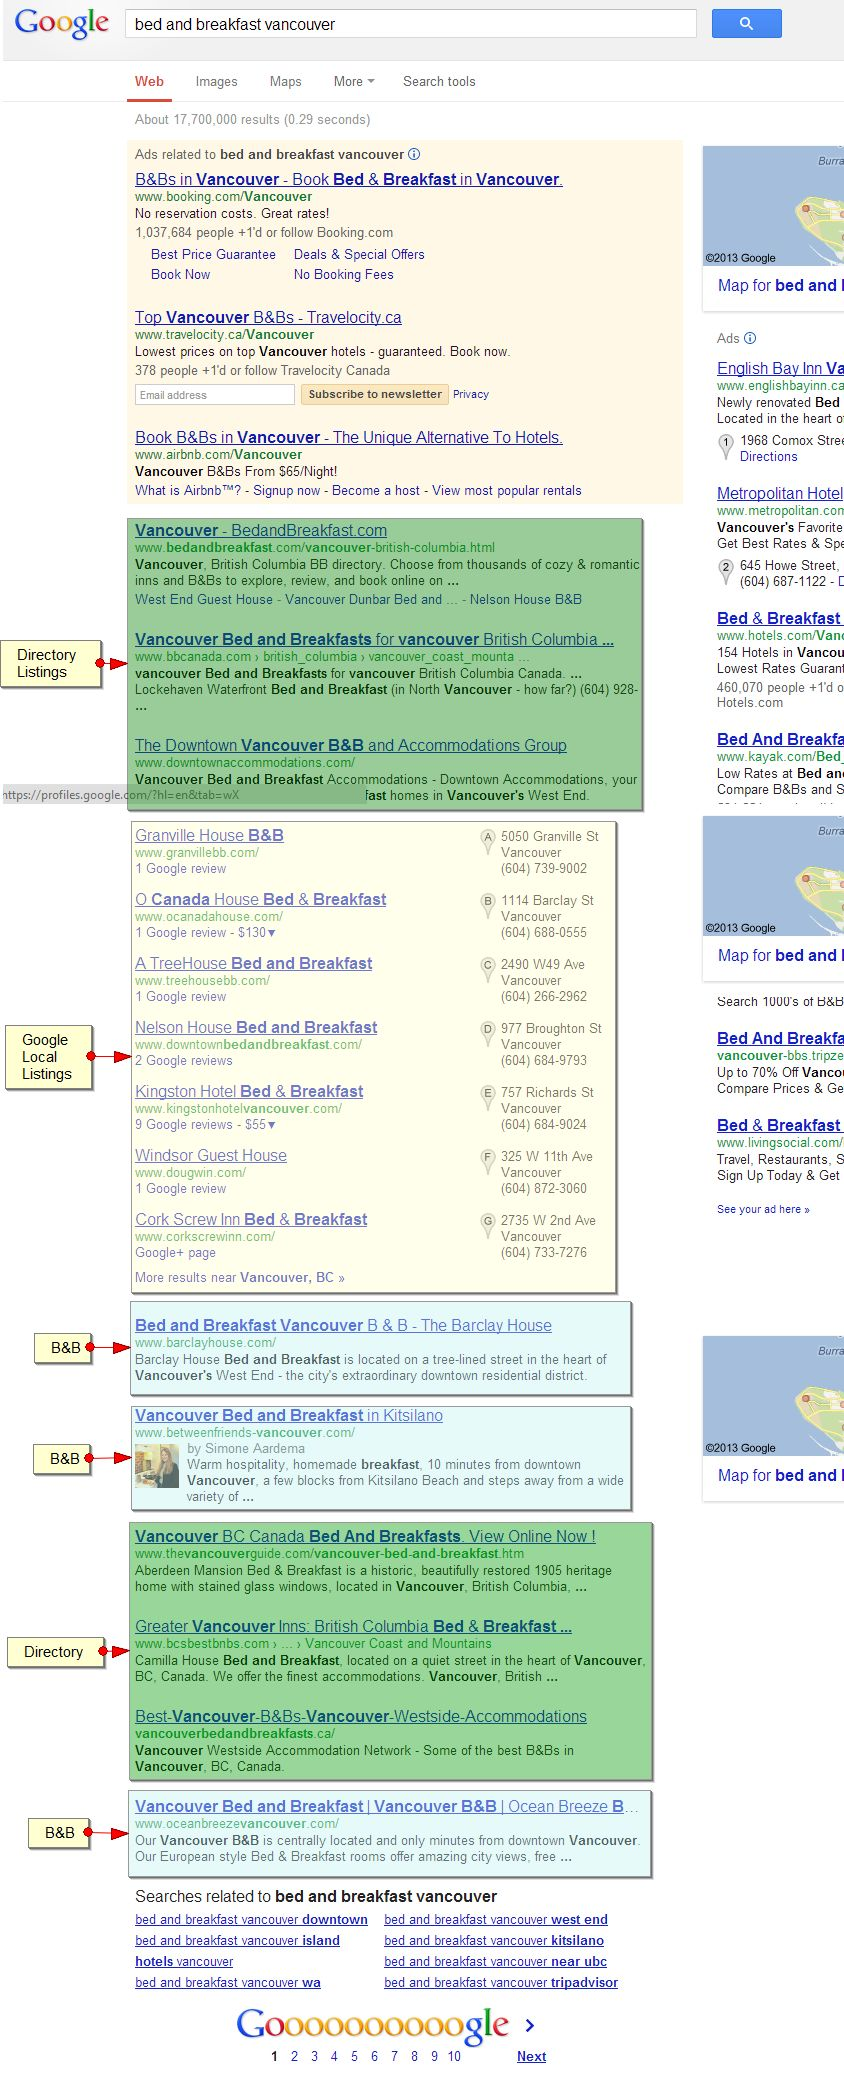 Google search result showing difference between organic and local listings